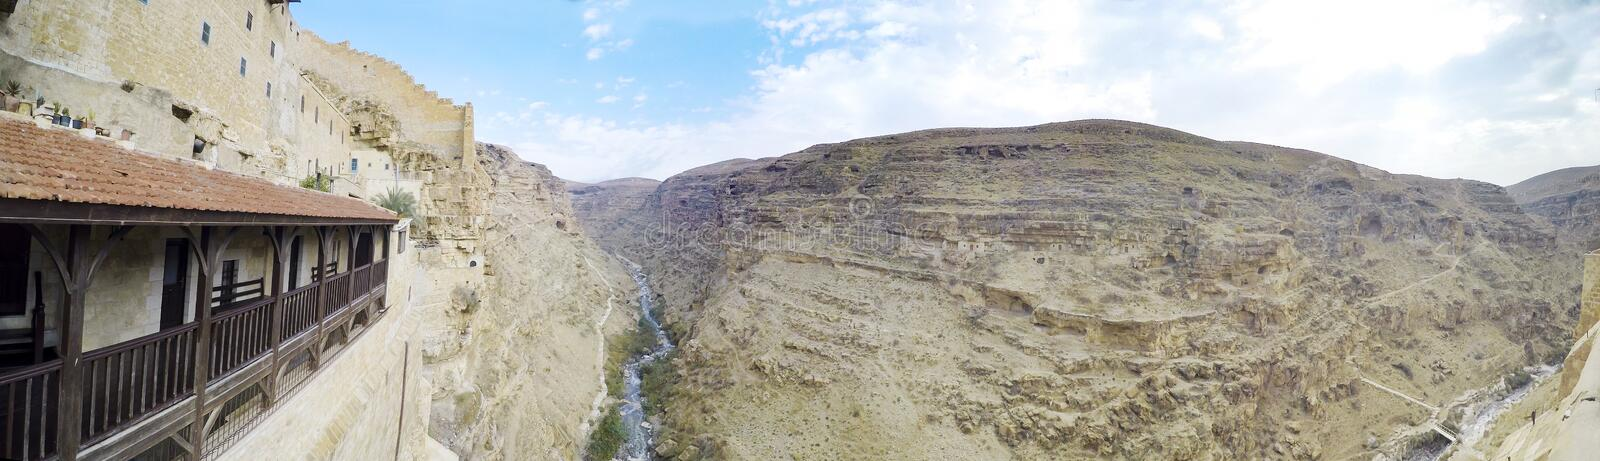 Panoramic view to canyon from Greek Orthodox monastery Great Lavra stock images